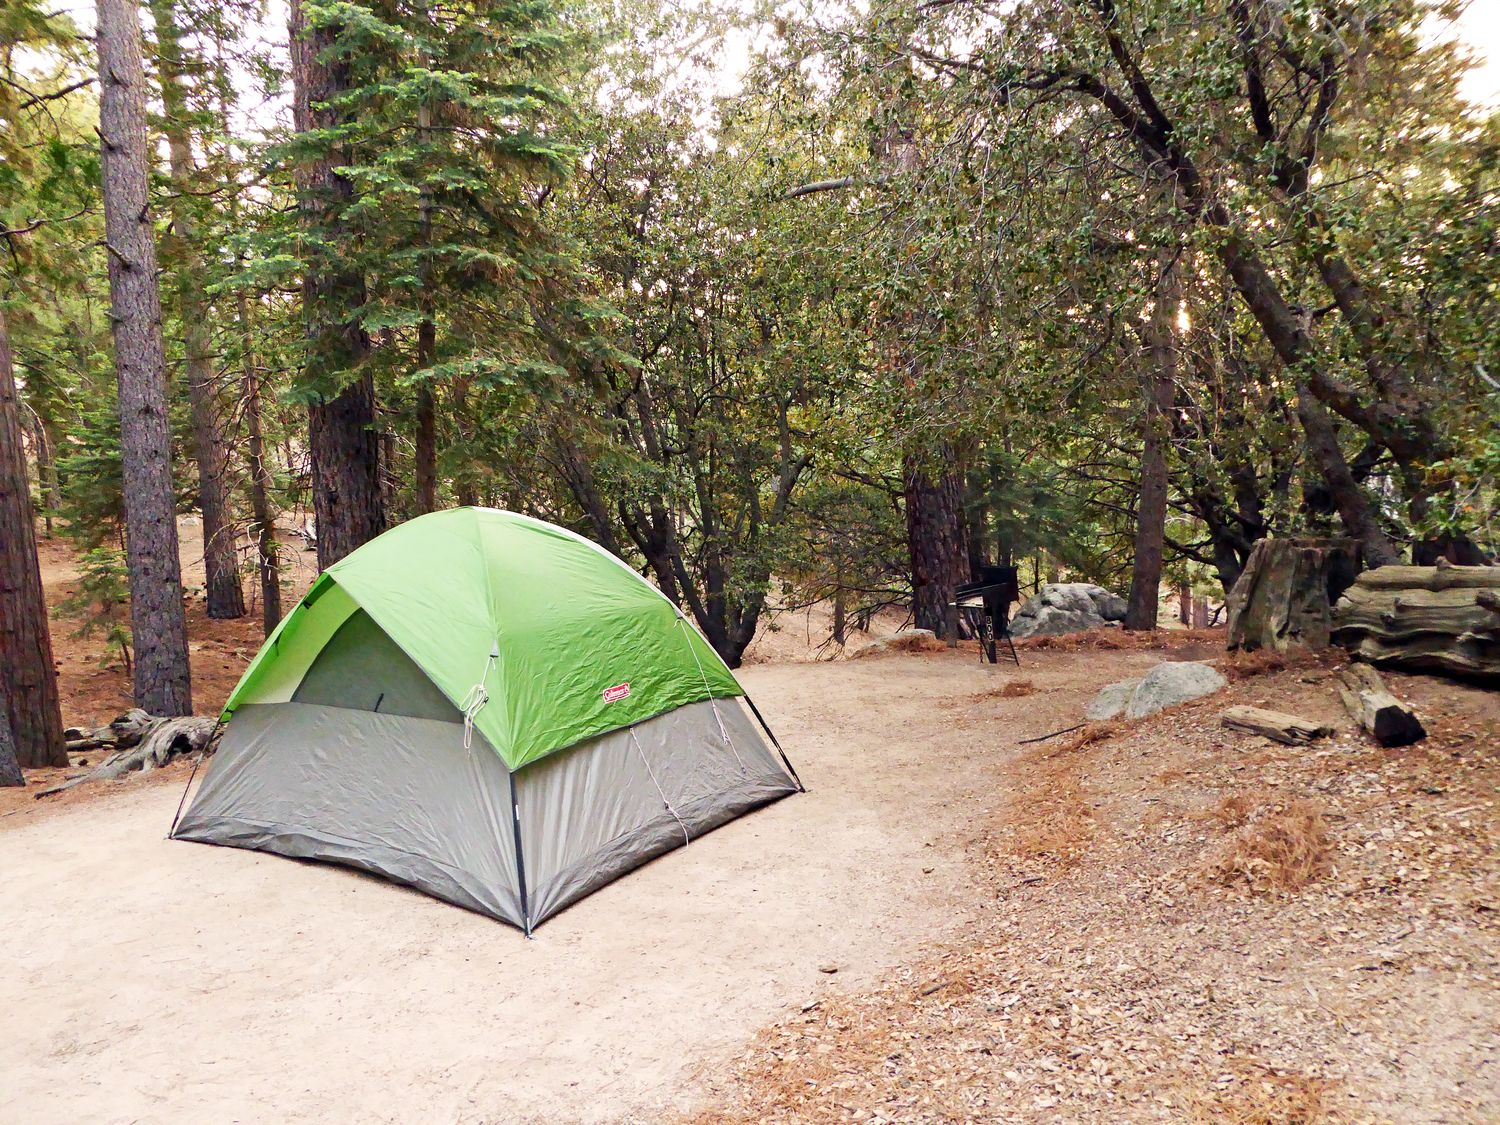 Camping tips in Idyllwild, CA | Camping in 2019 | Idyllwild